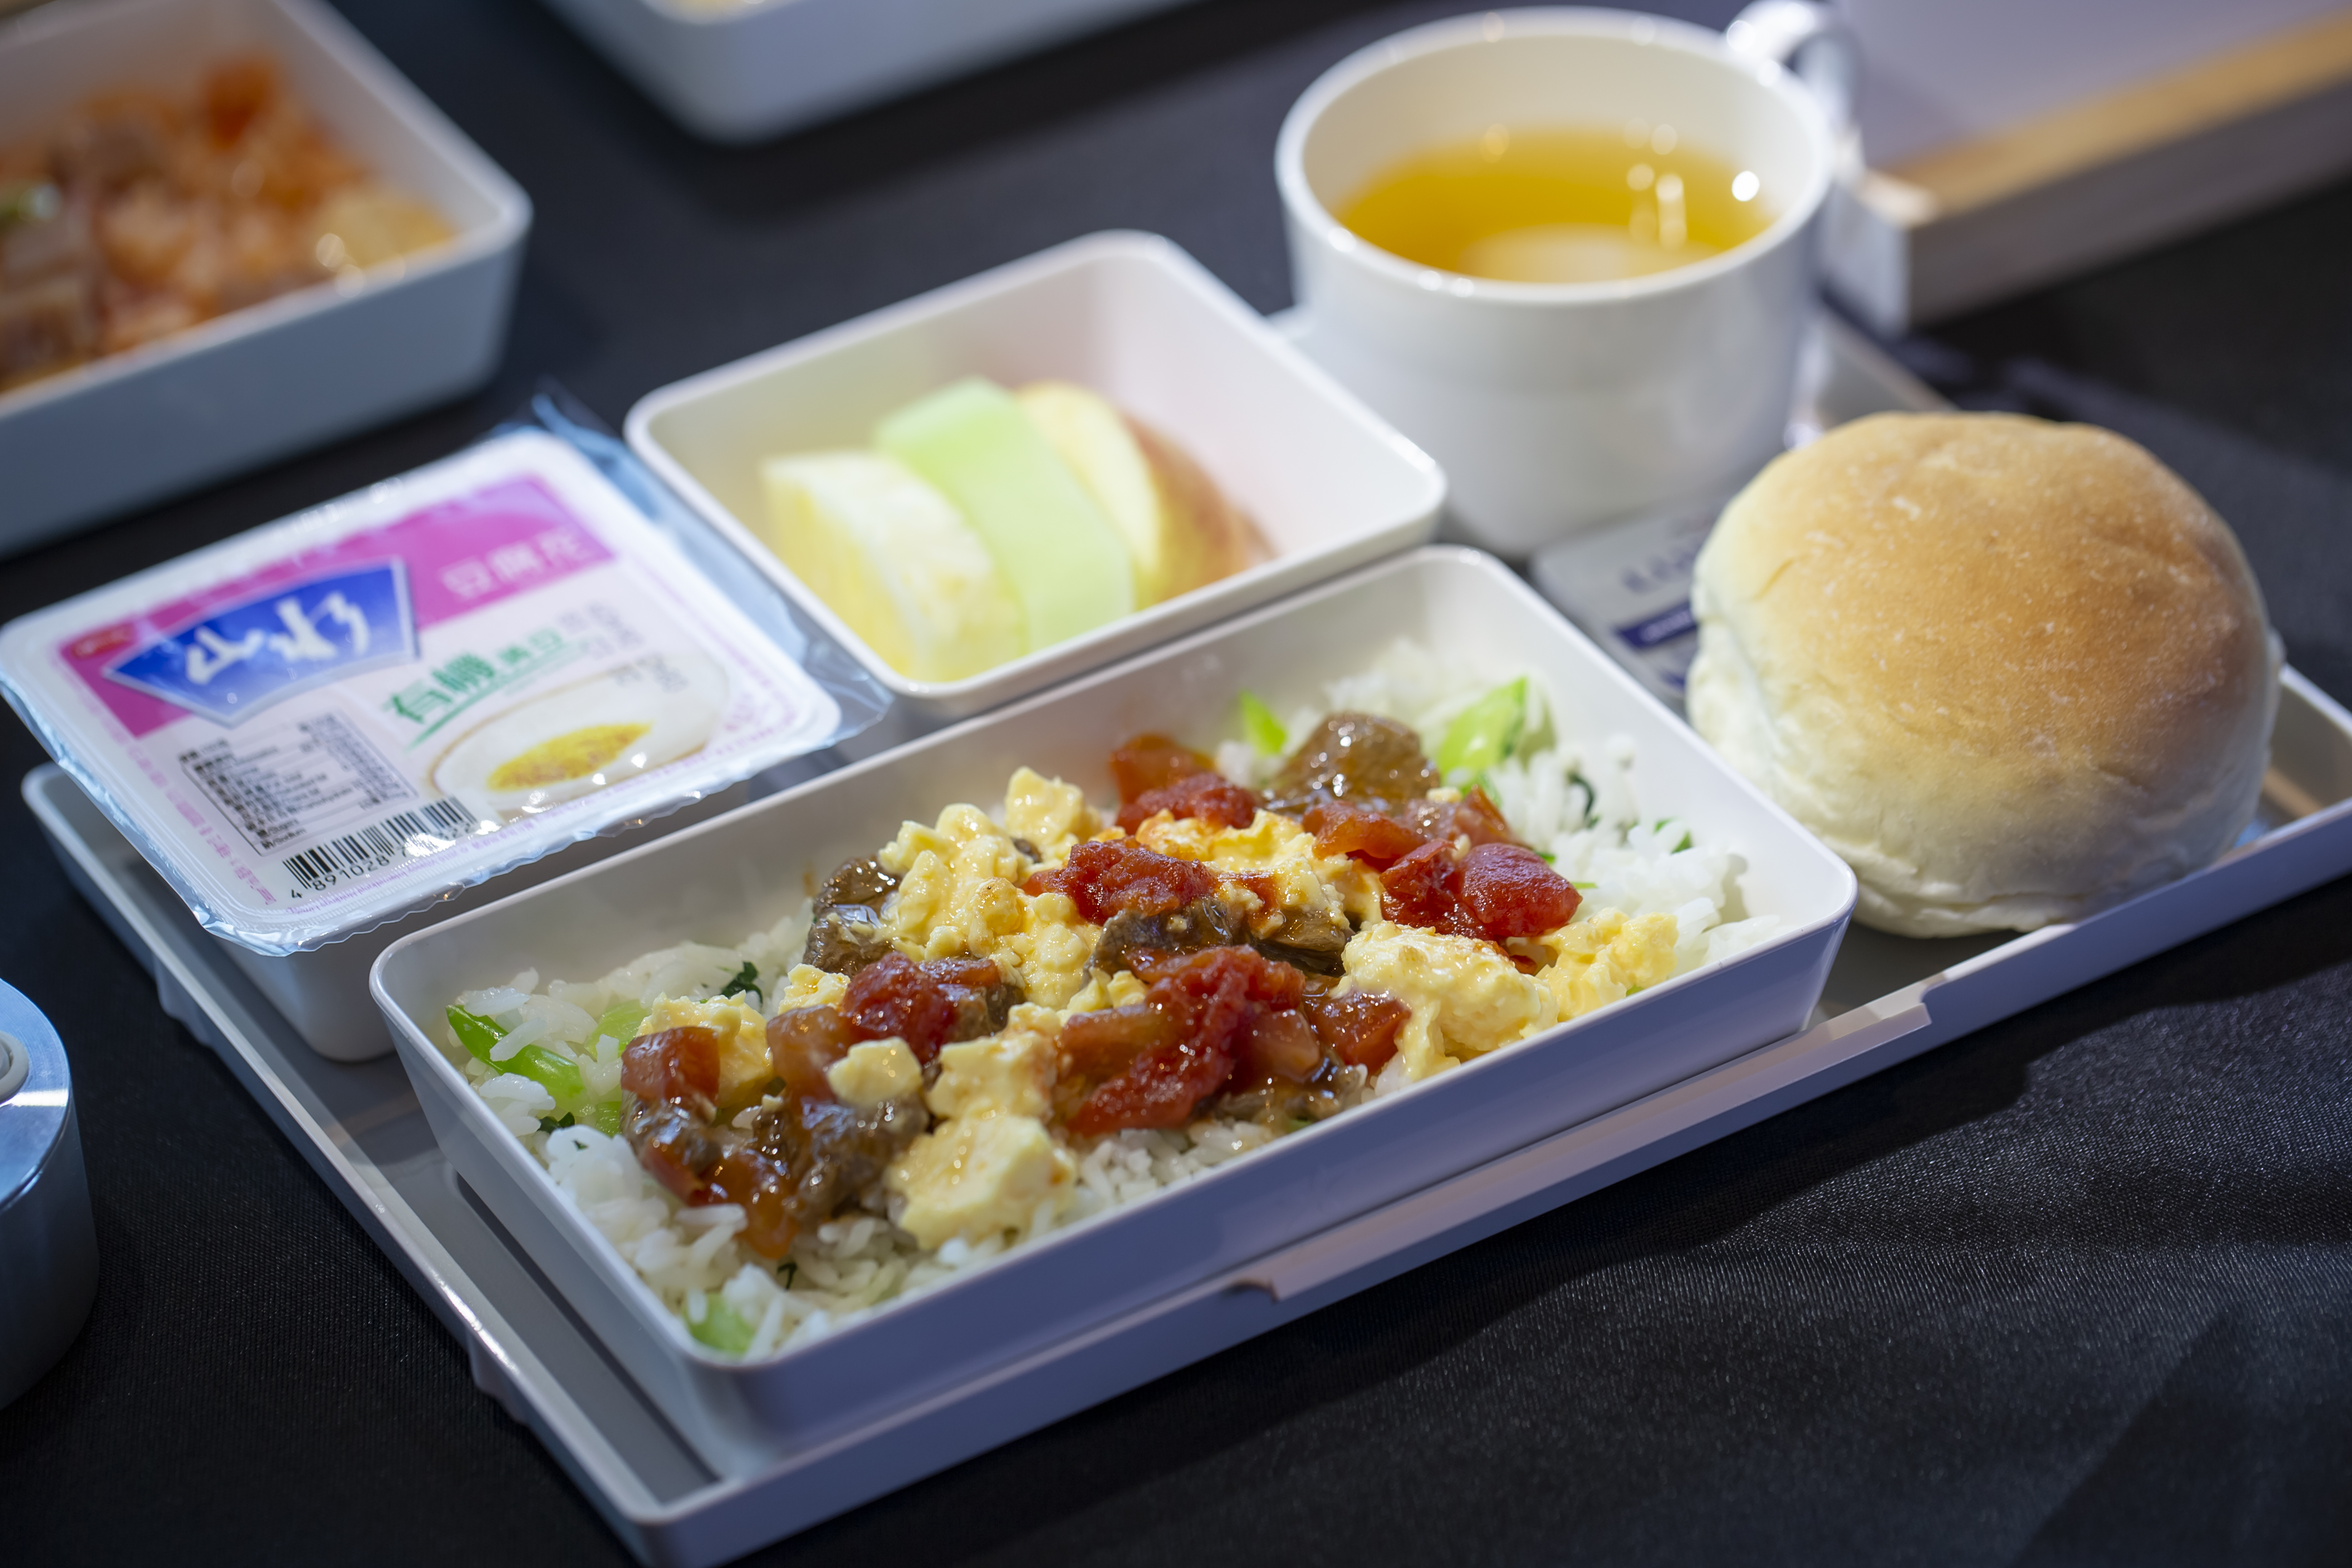 Special In-Flight Meals | Order On Selected HK Airlines Flights